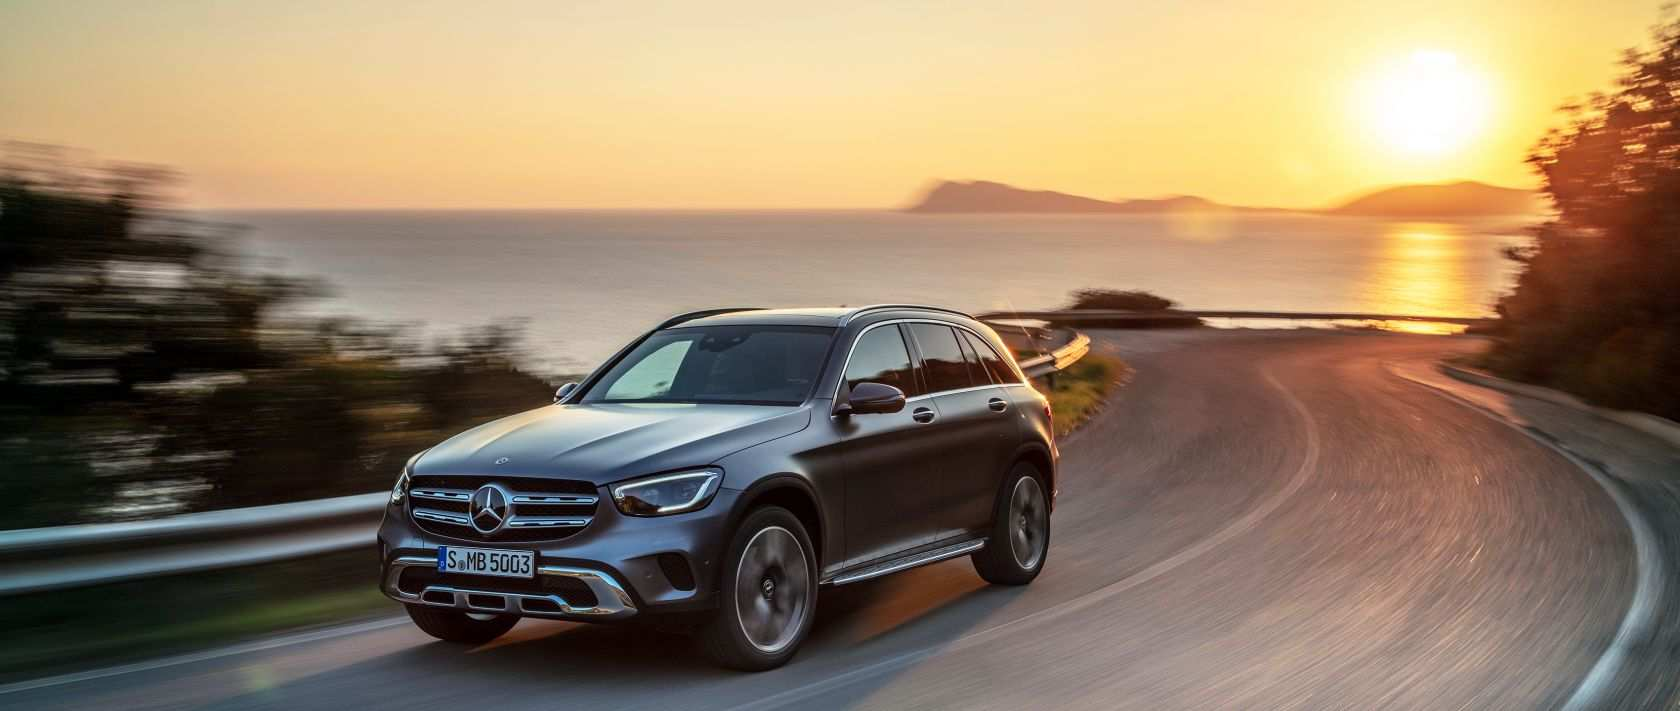 62 The Mercedes Glc Exterior And Interior